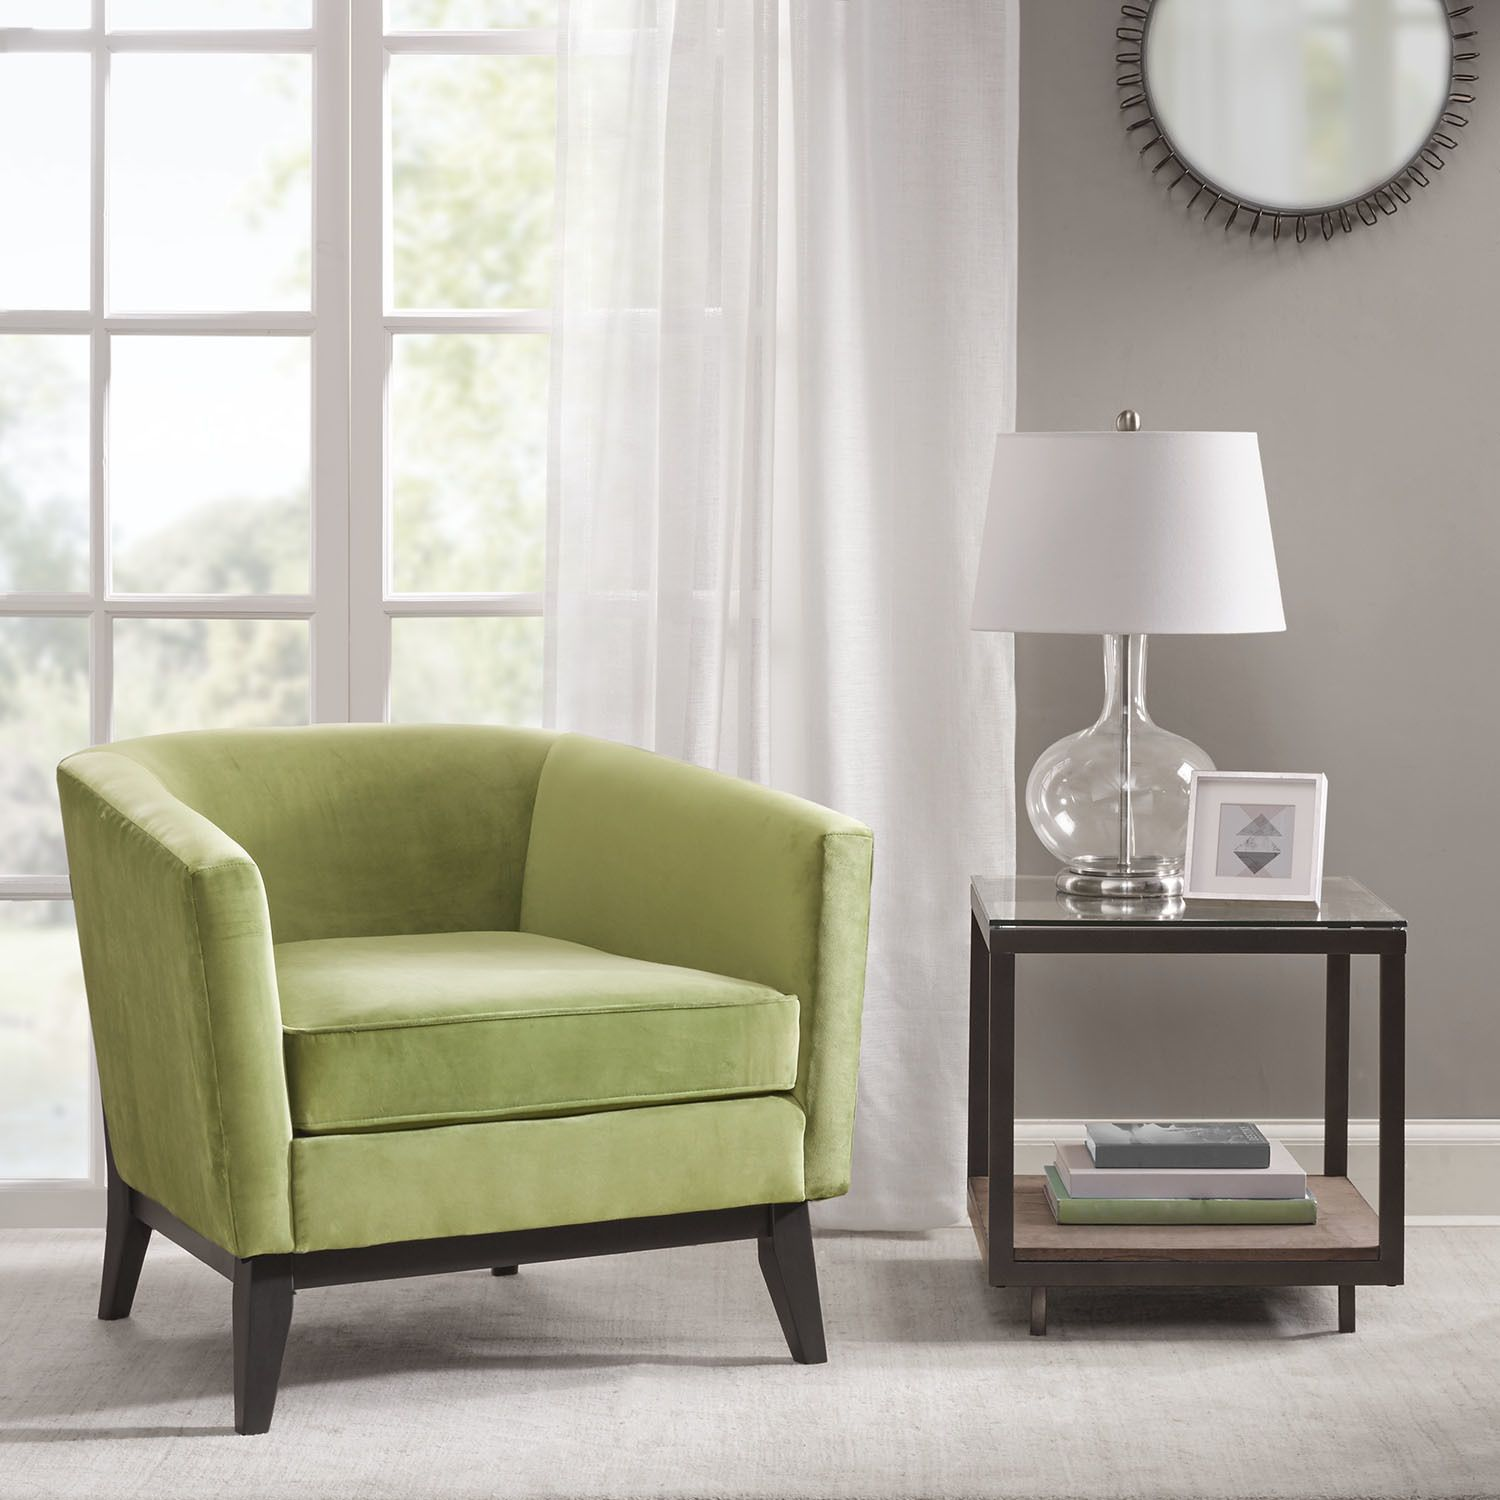 Percy Accent Chair Moss Green Velvet (.) (Fabric) #greenroom | green ...